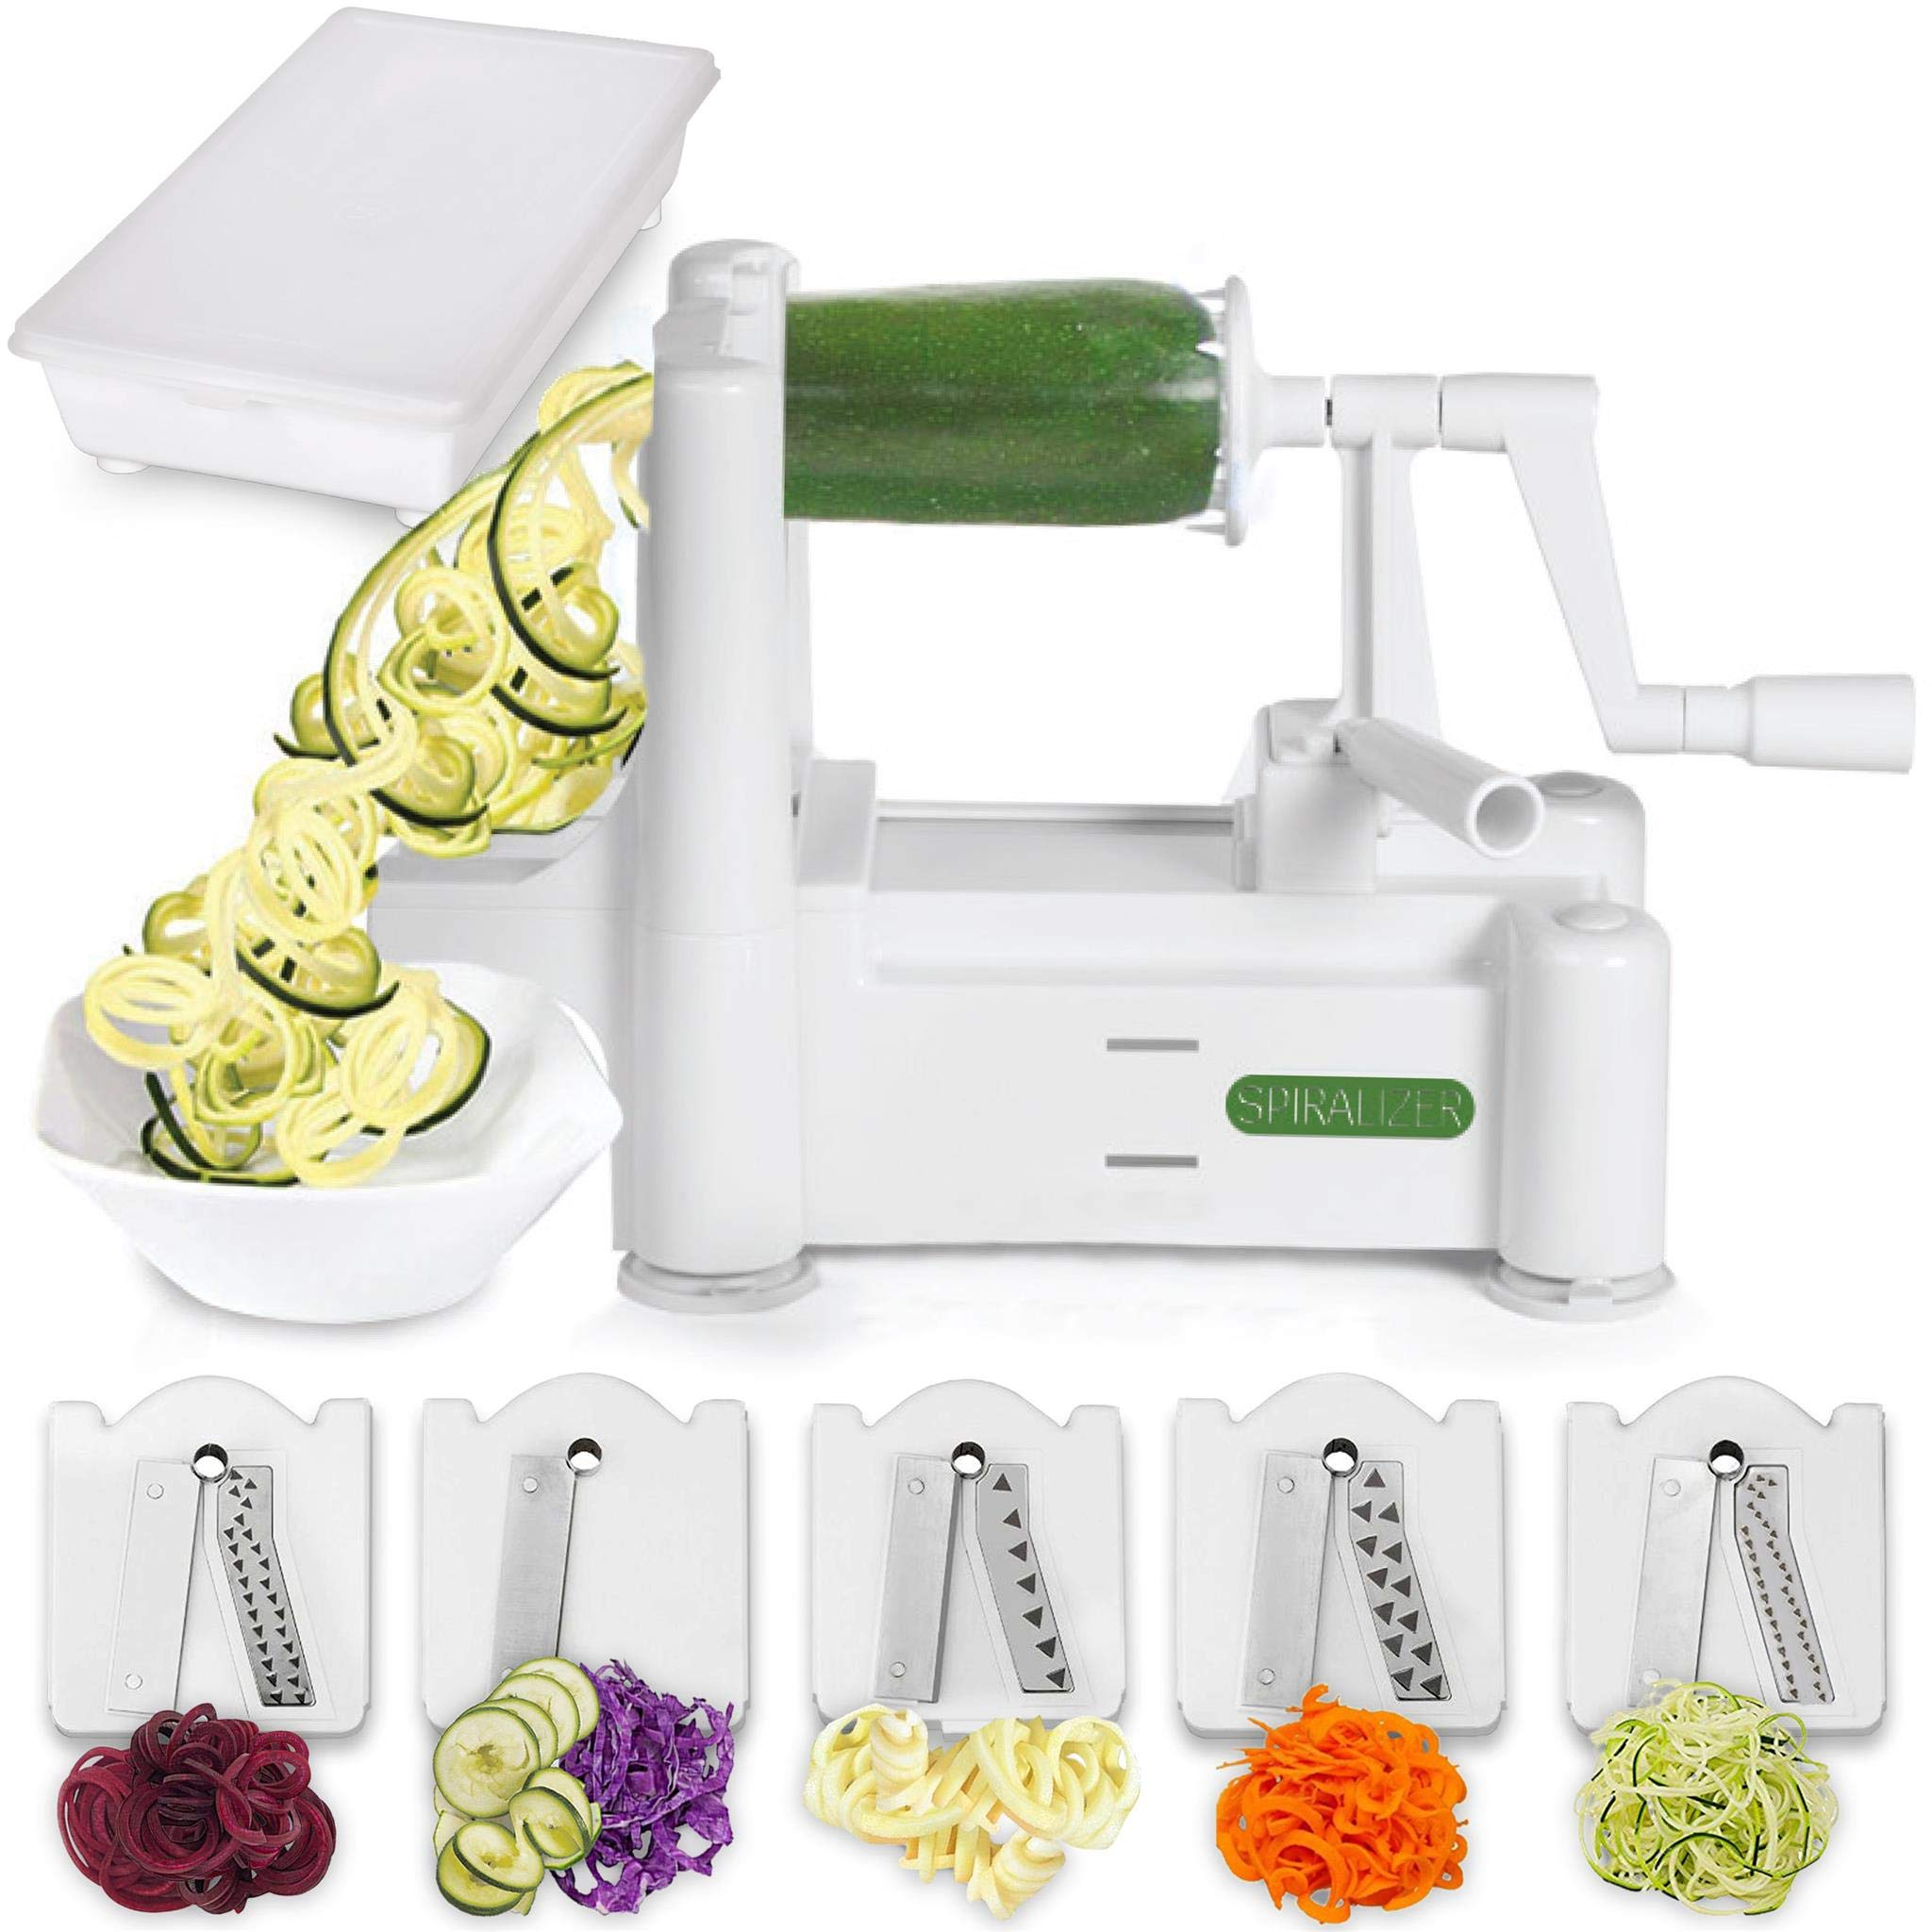 Spiralizer 5-Blade Vegetable Slicer, Strongest-and-Heaviest Duty Vegetable Spiral Slicer, Best Veggie Pasta Spaghetti Maker for Keto/Paleo/Gluten-Free, comes with Container & 4 Recipe Ebooks by Spiralizer (Image #1)